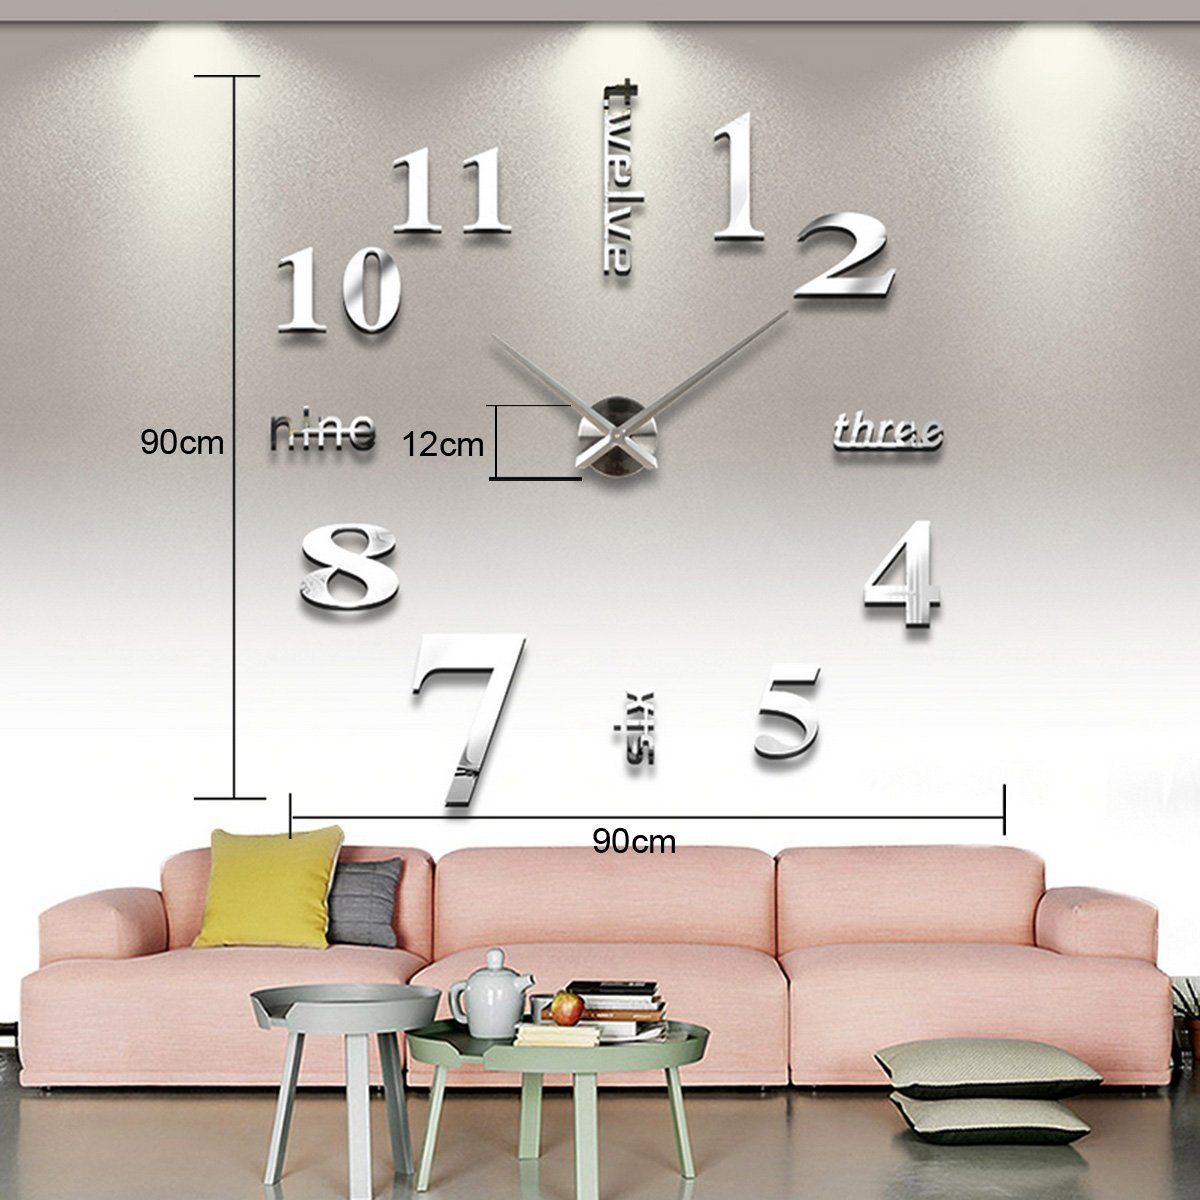 Zuwit contemporary diy modern 3d frameless wall large clock 40 zuwit contemporary diy modern 3d frameless wall large clock 40 awesome self design wall clock roman numeral black amazon office products amipublicfo Gallery